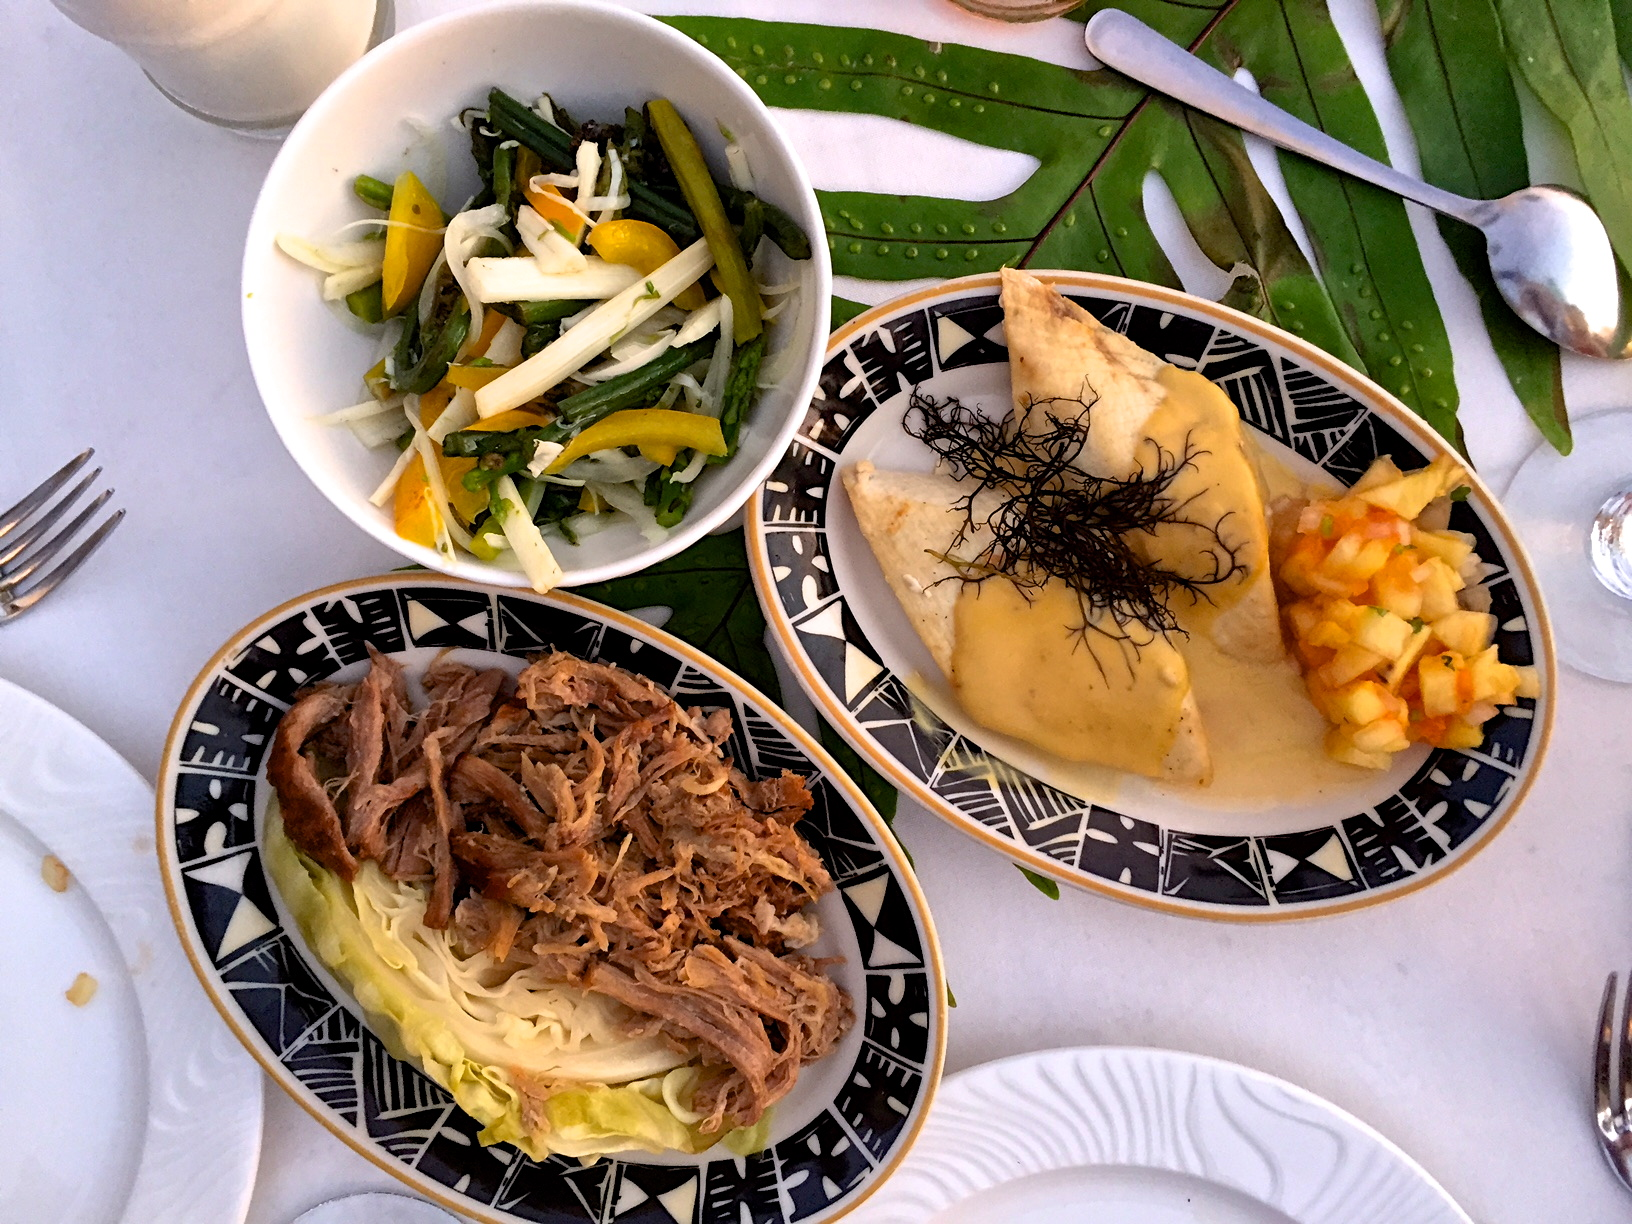 This luau served courses from different historical regions of Hawaii. Ate a little too much that evening, not to mention the unlimited pina coladas.